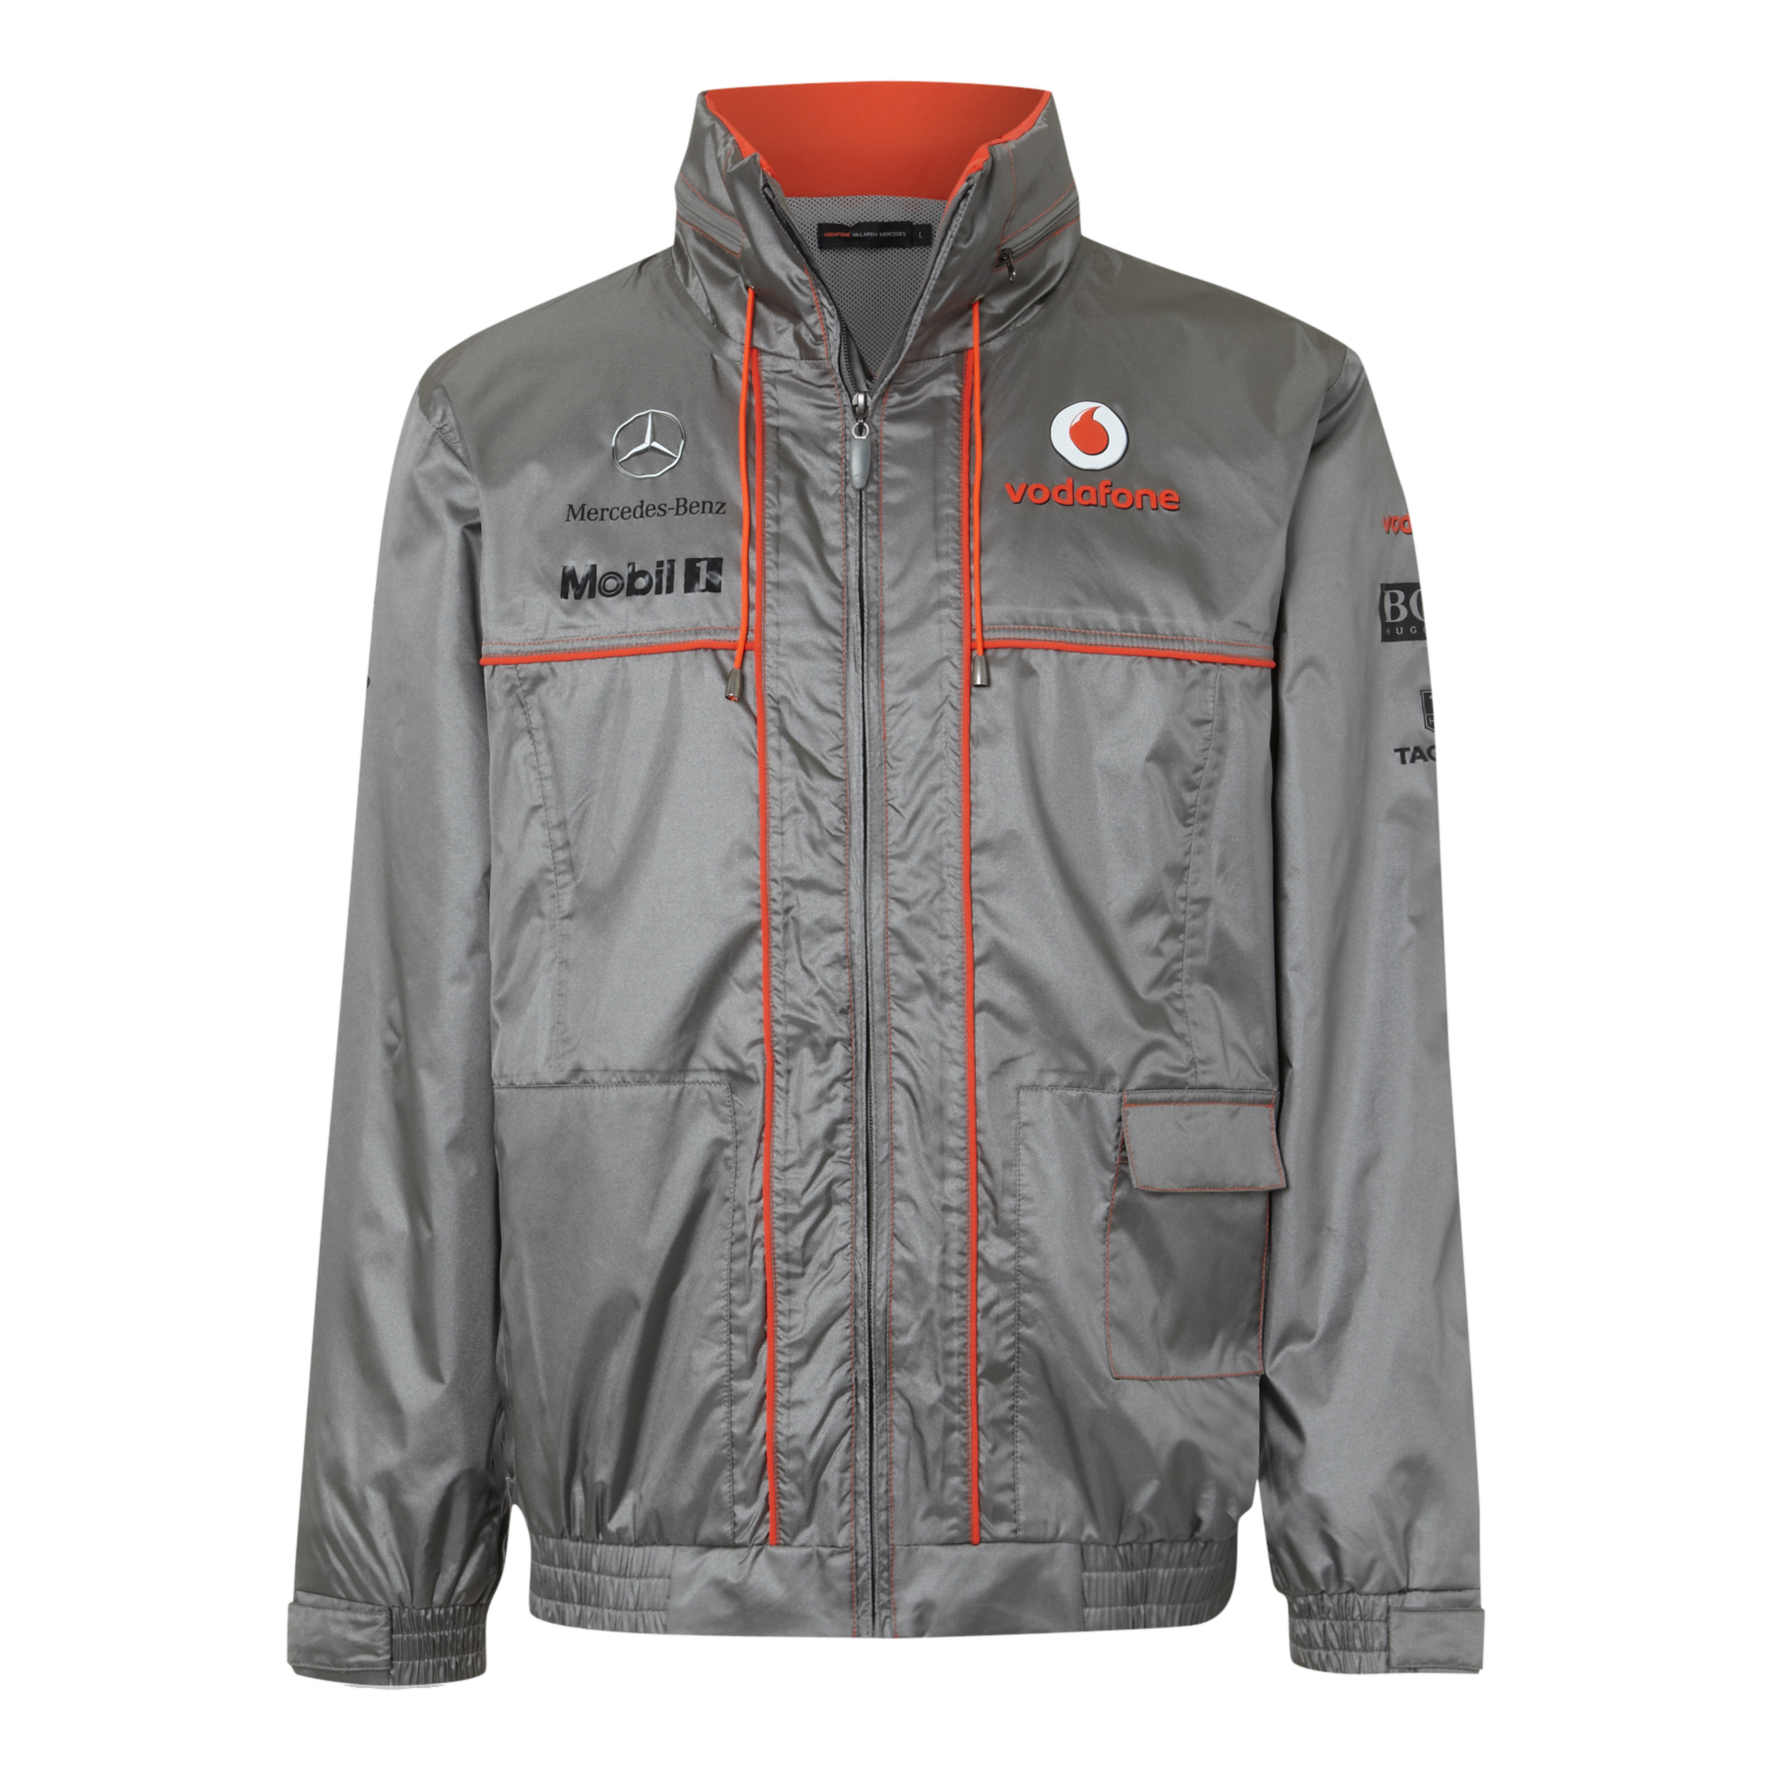 Vodafone McLaren Mercedes 2013 Team Waterproof Jacket